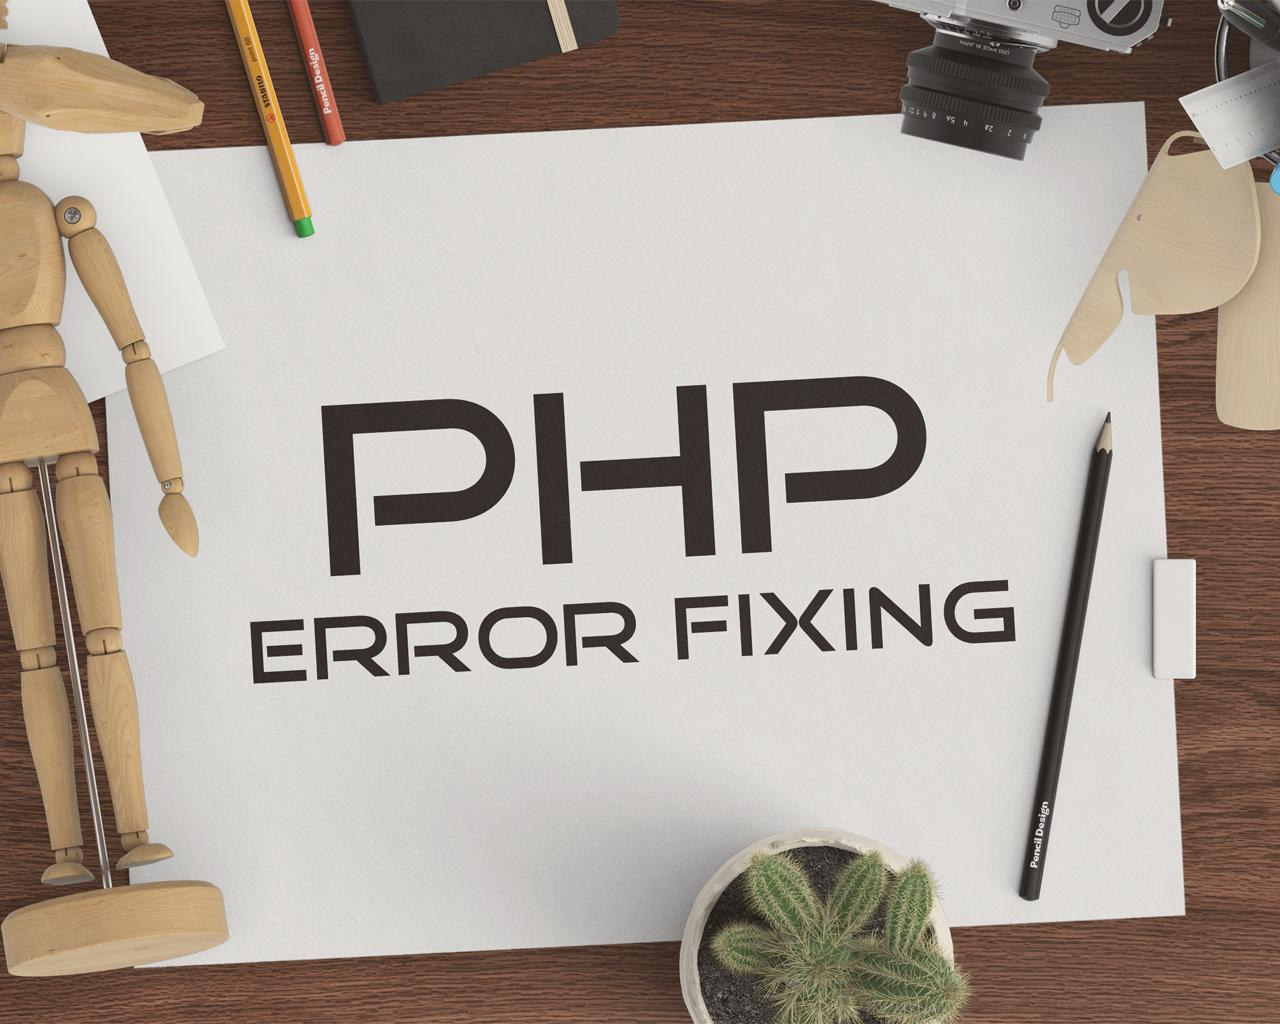 PHP Error Fixing & Script Installation by hasanet - 99370